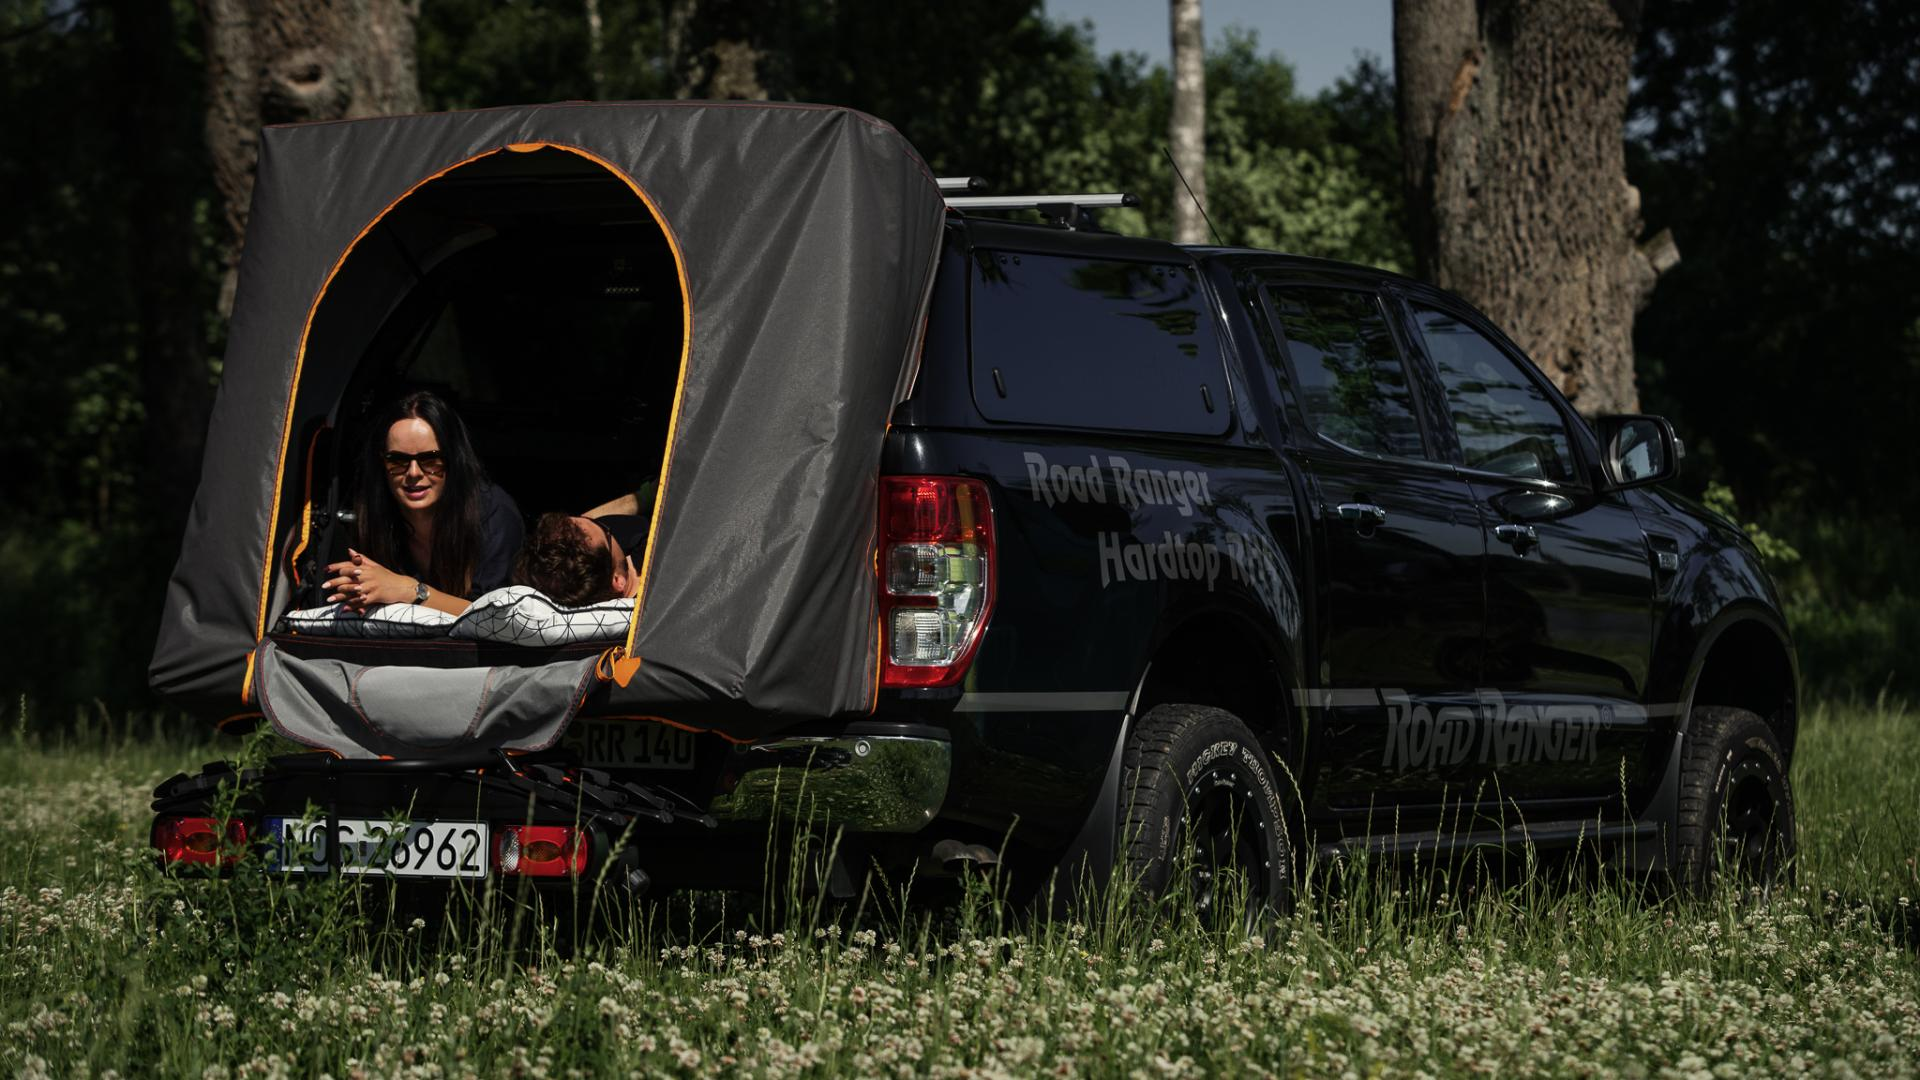 Foot-packing tent Ford Ranger RH4 Camping